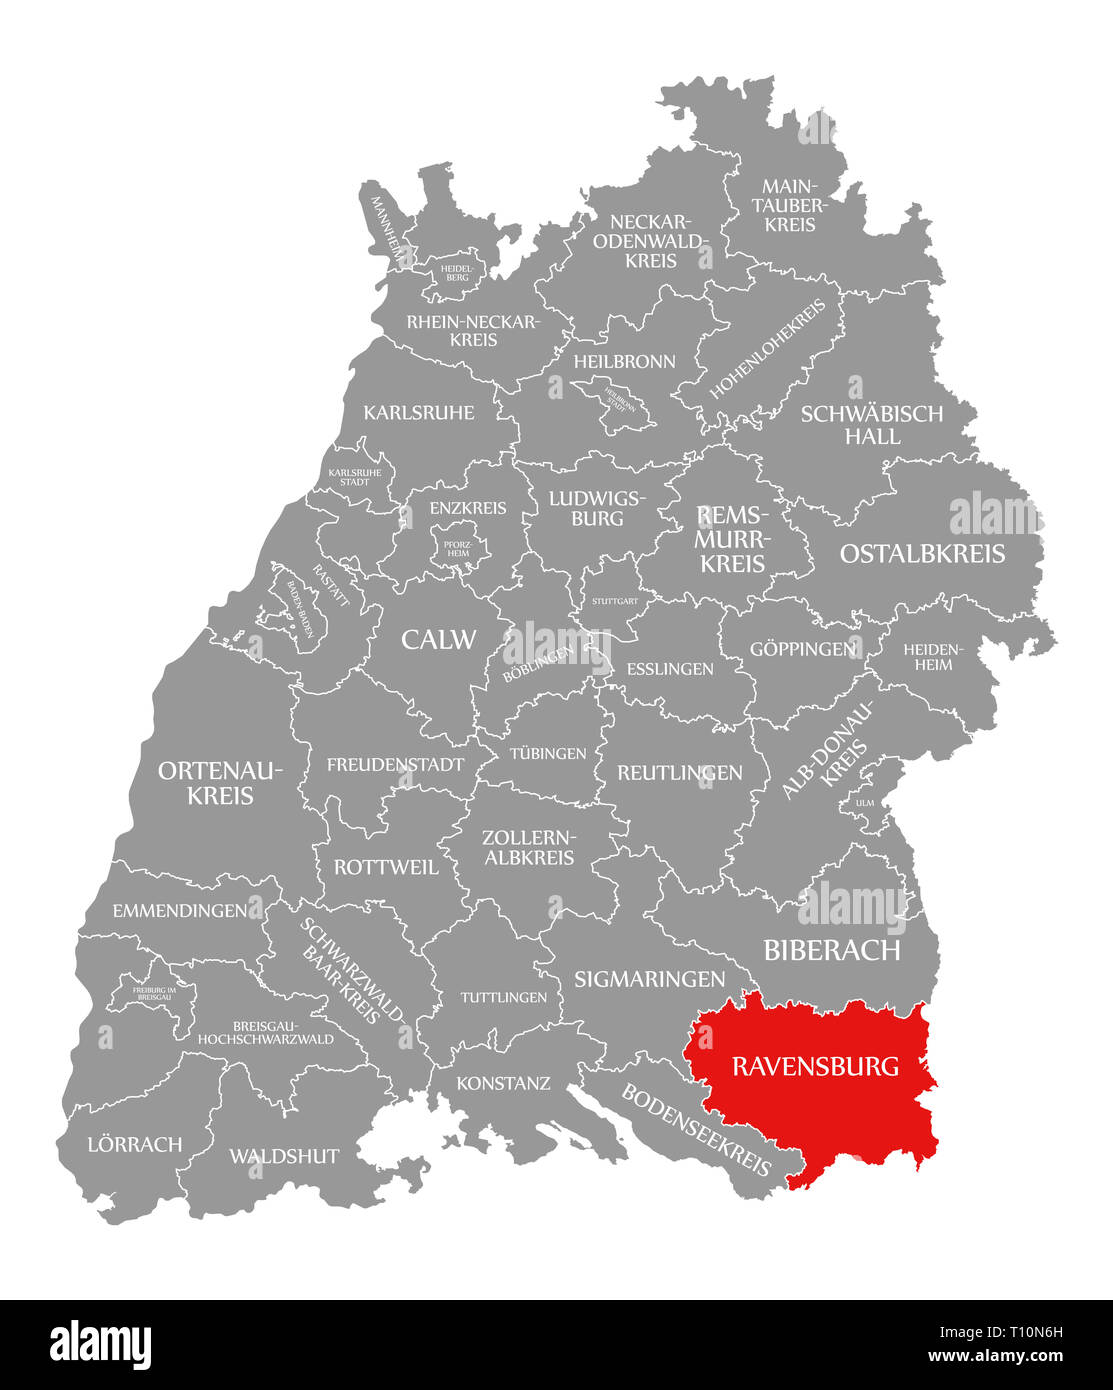 Ravensburg County Red Highlighted In Map Of Baden Wuerttemberg